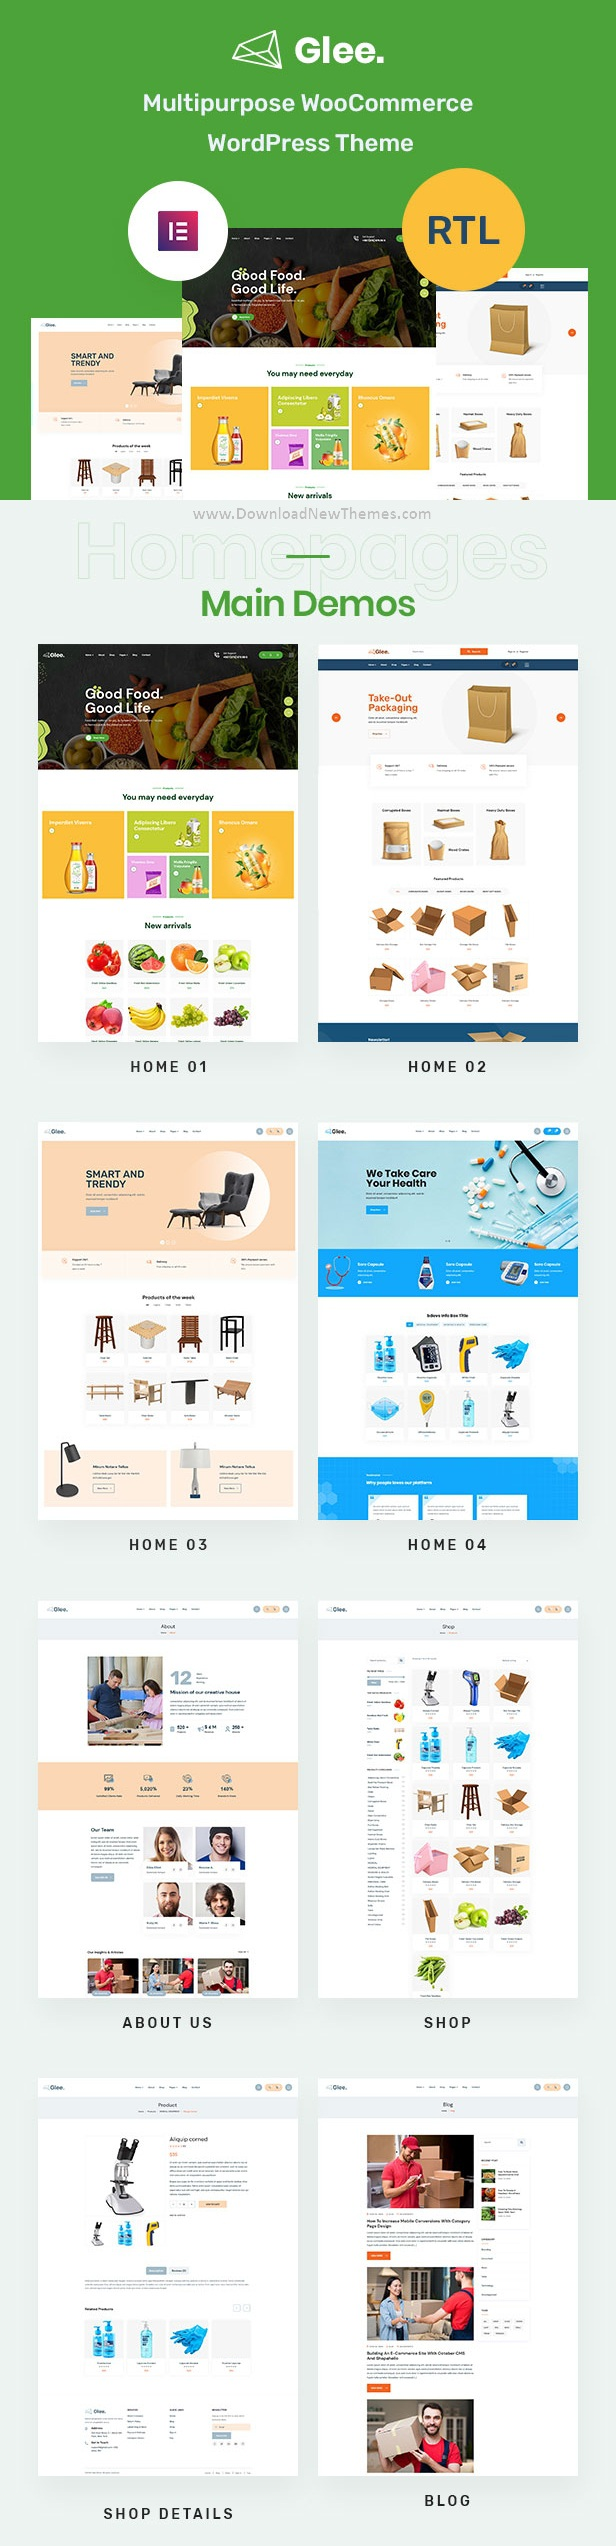 Premium Multipurpose WooCommerce WordPress Theme